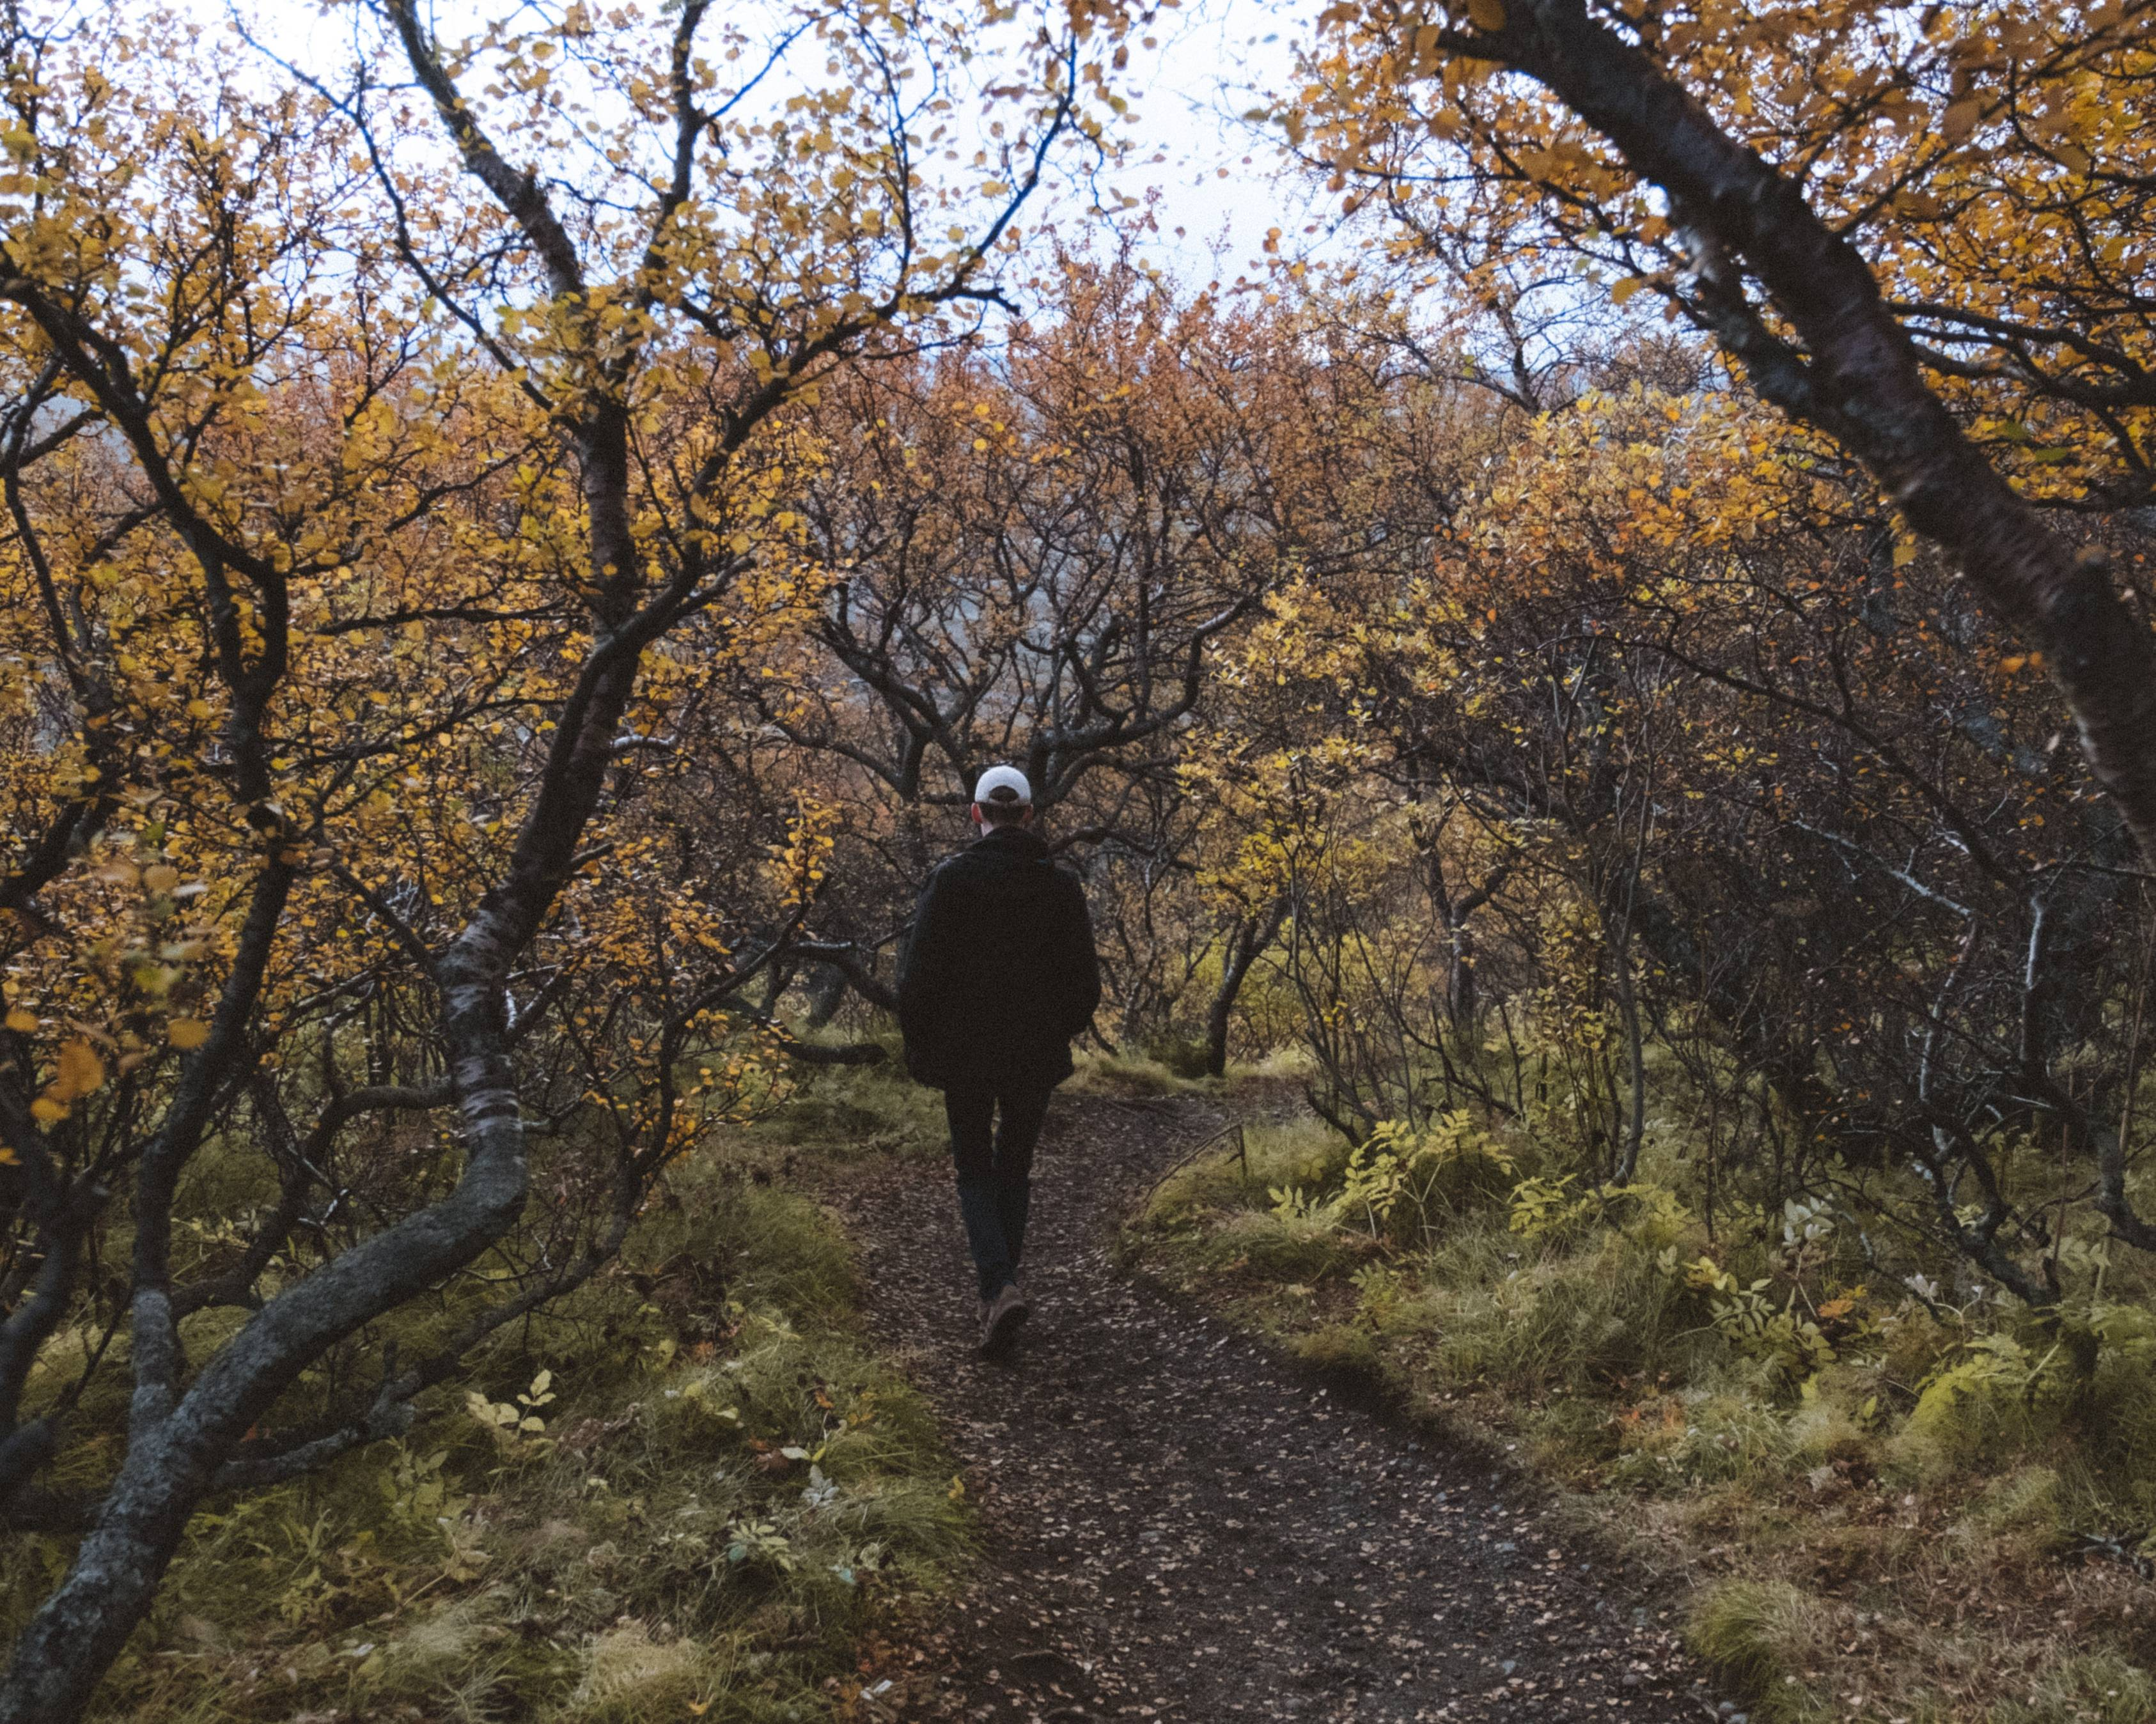 man-with-a-white-cap-hat-walking-in-birch-forest-in-iceland-on-narrow-dirt-road-in-autmn